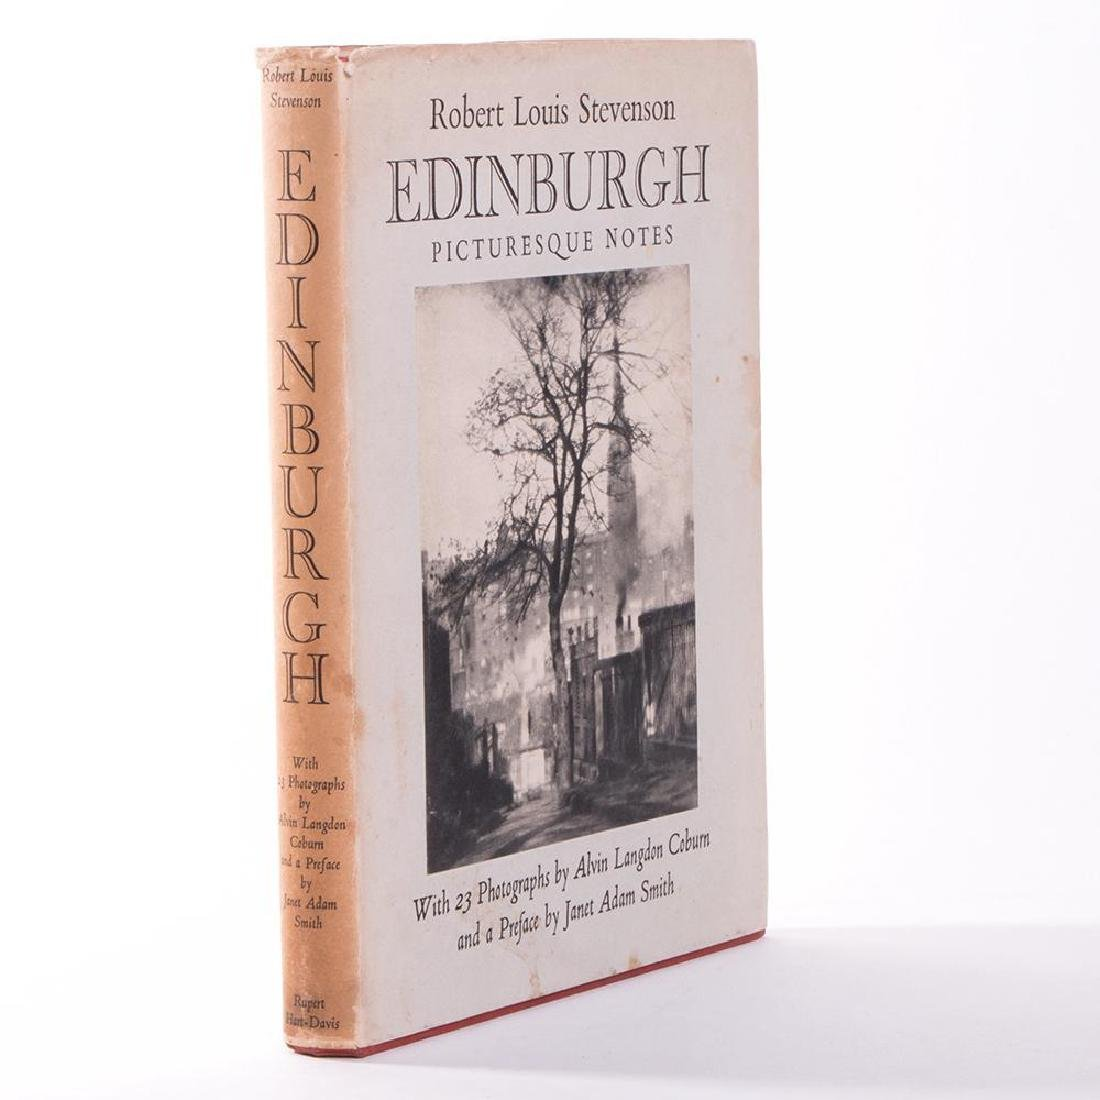 Robert Louis Stevenson, Edinburgh: Picturesque Notes